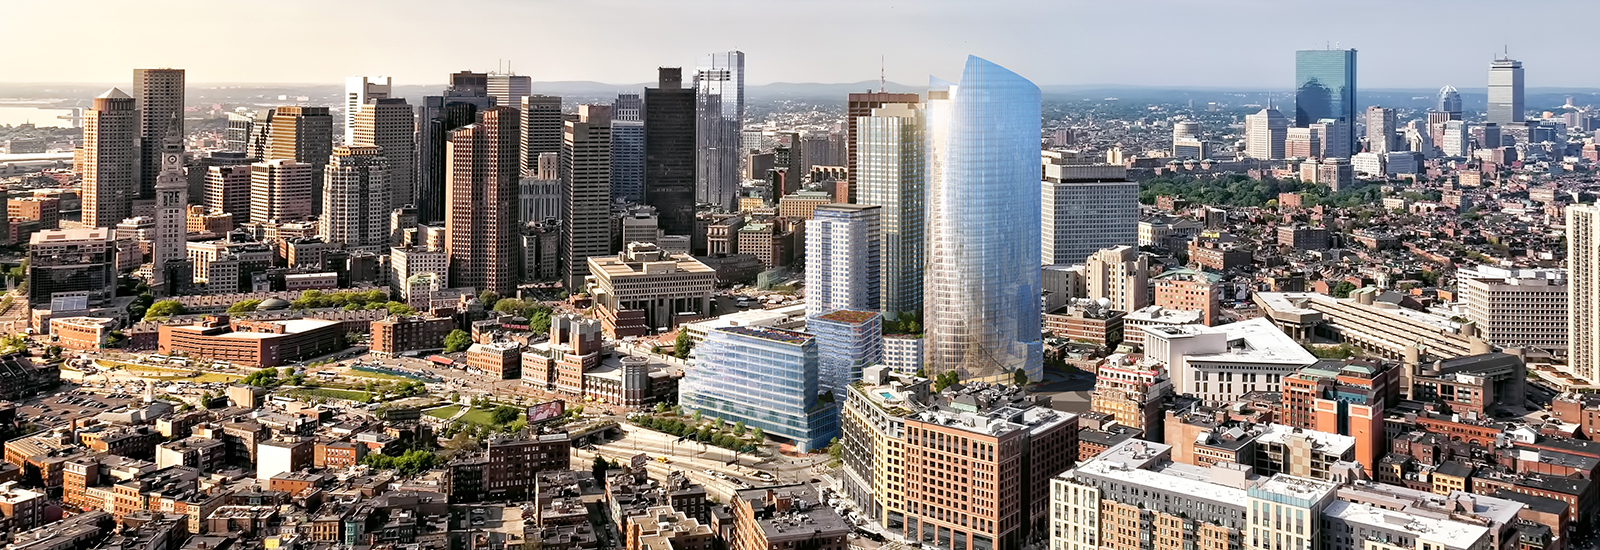 An aerial view of city buildings and skyscrapers in Boston.